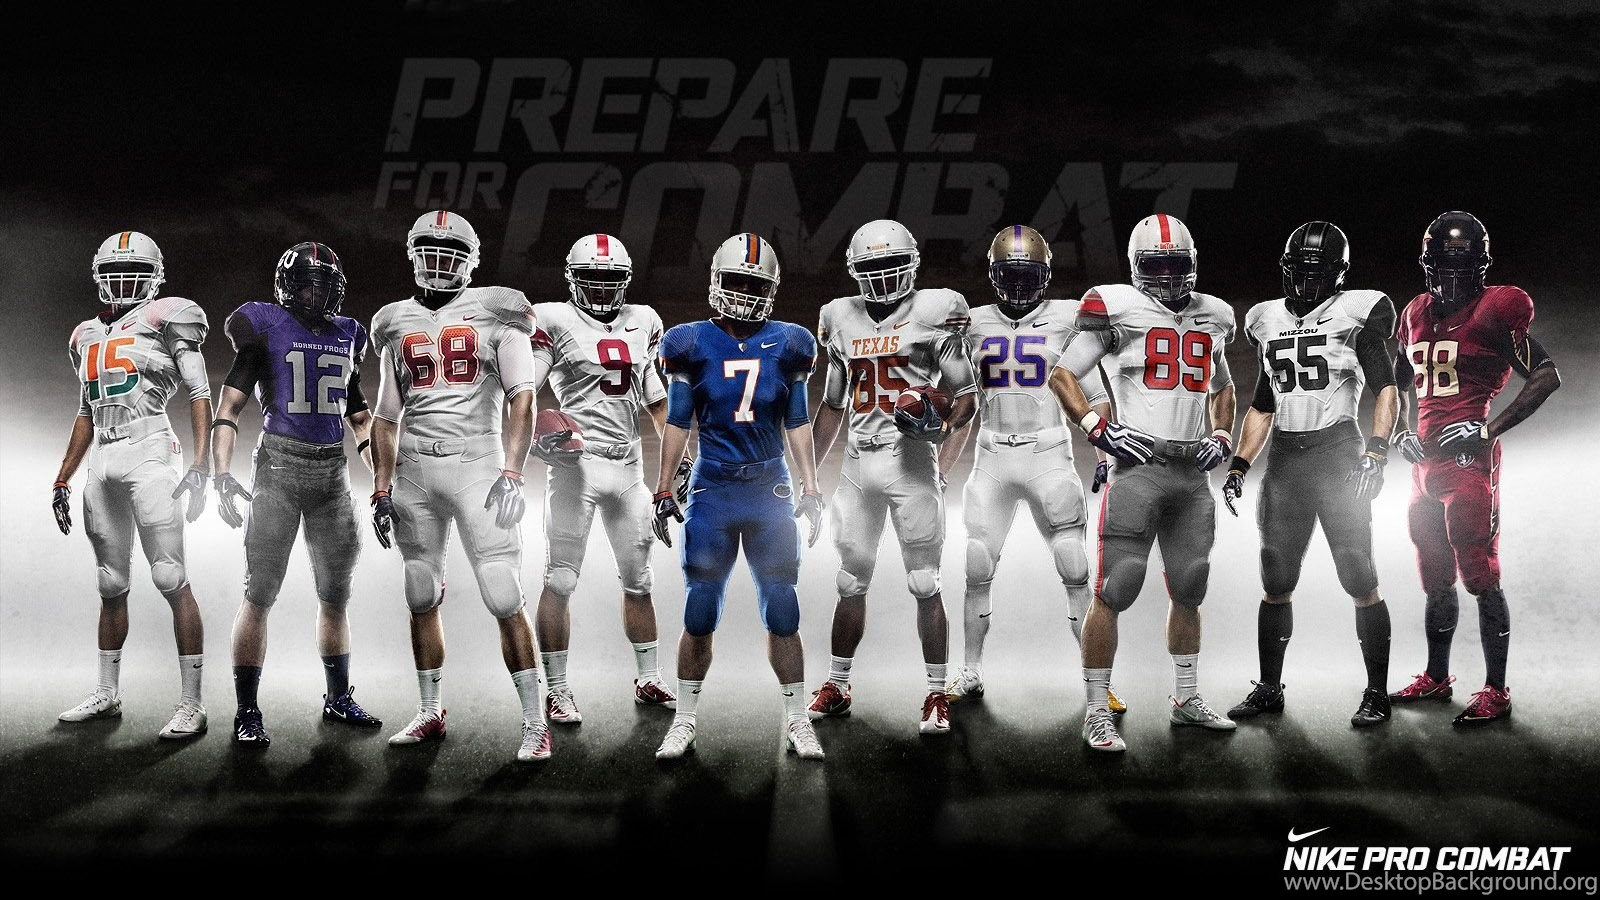 Nike Pro Combat Team Nfl 1600x Football Live Wallpapers In